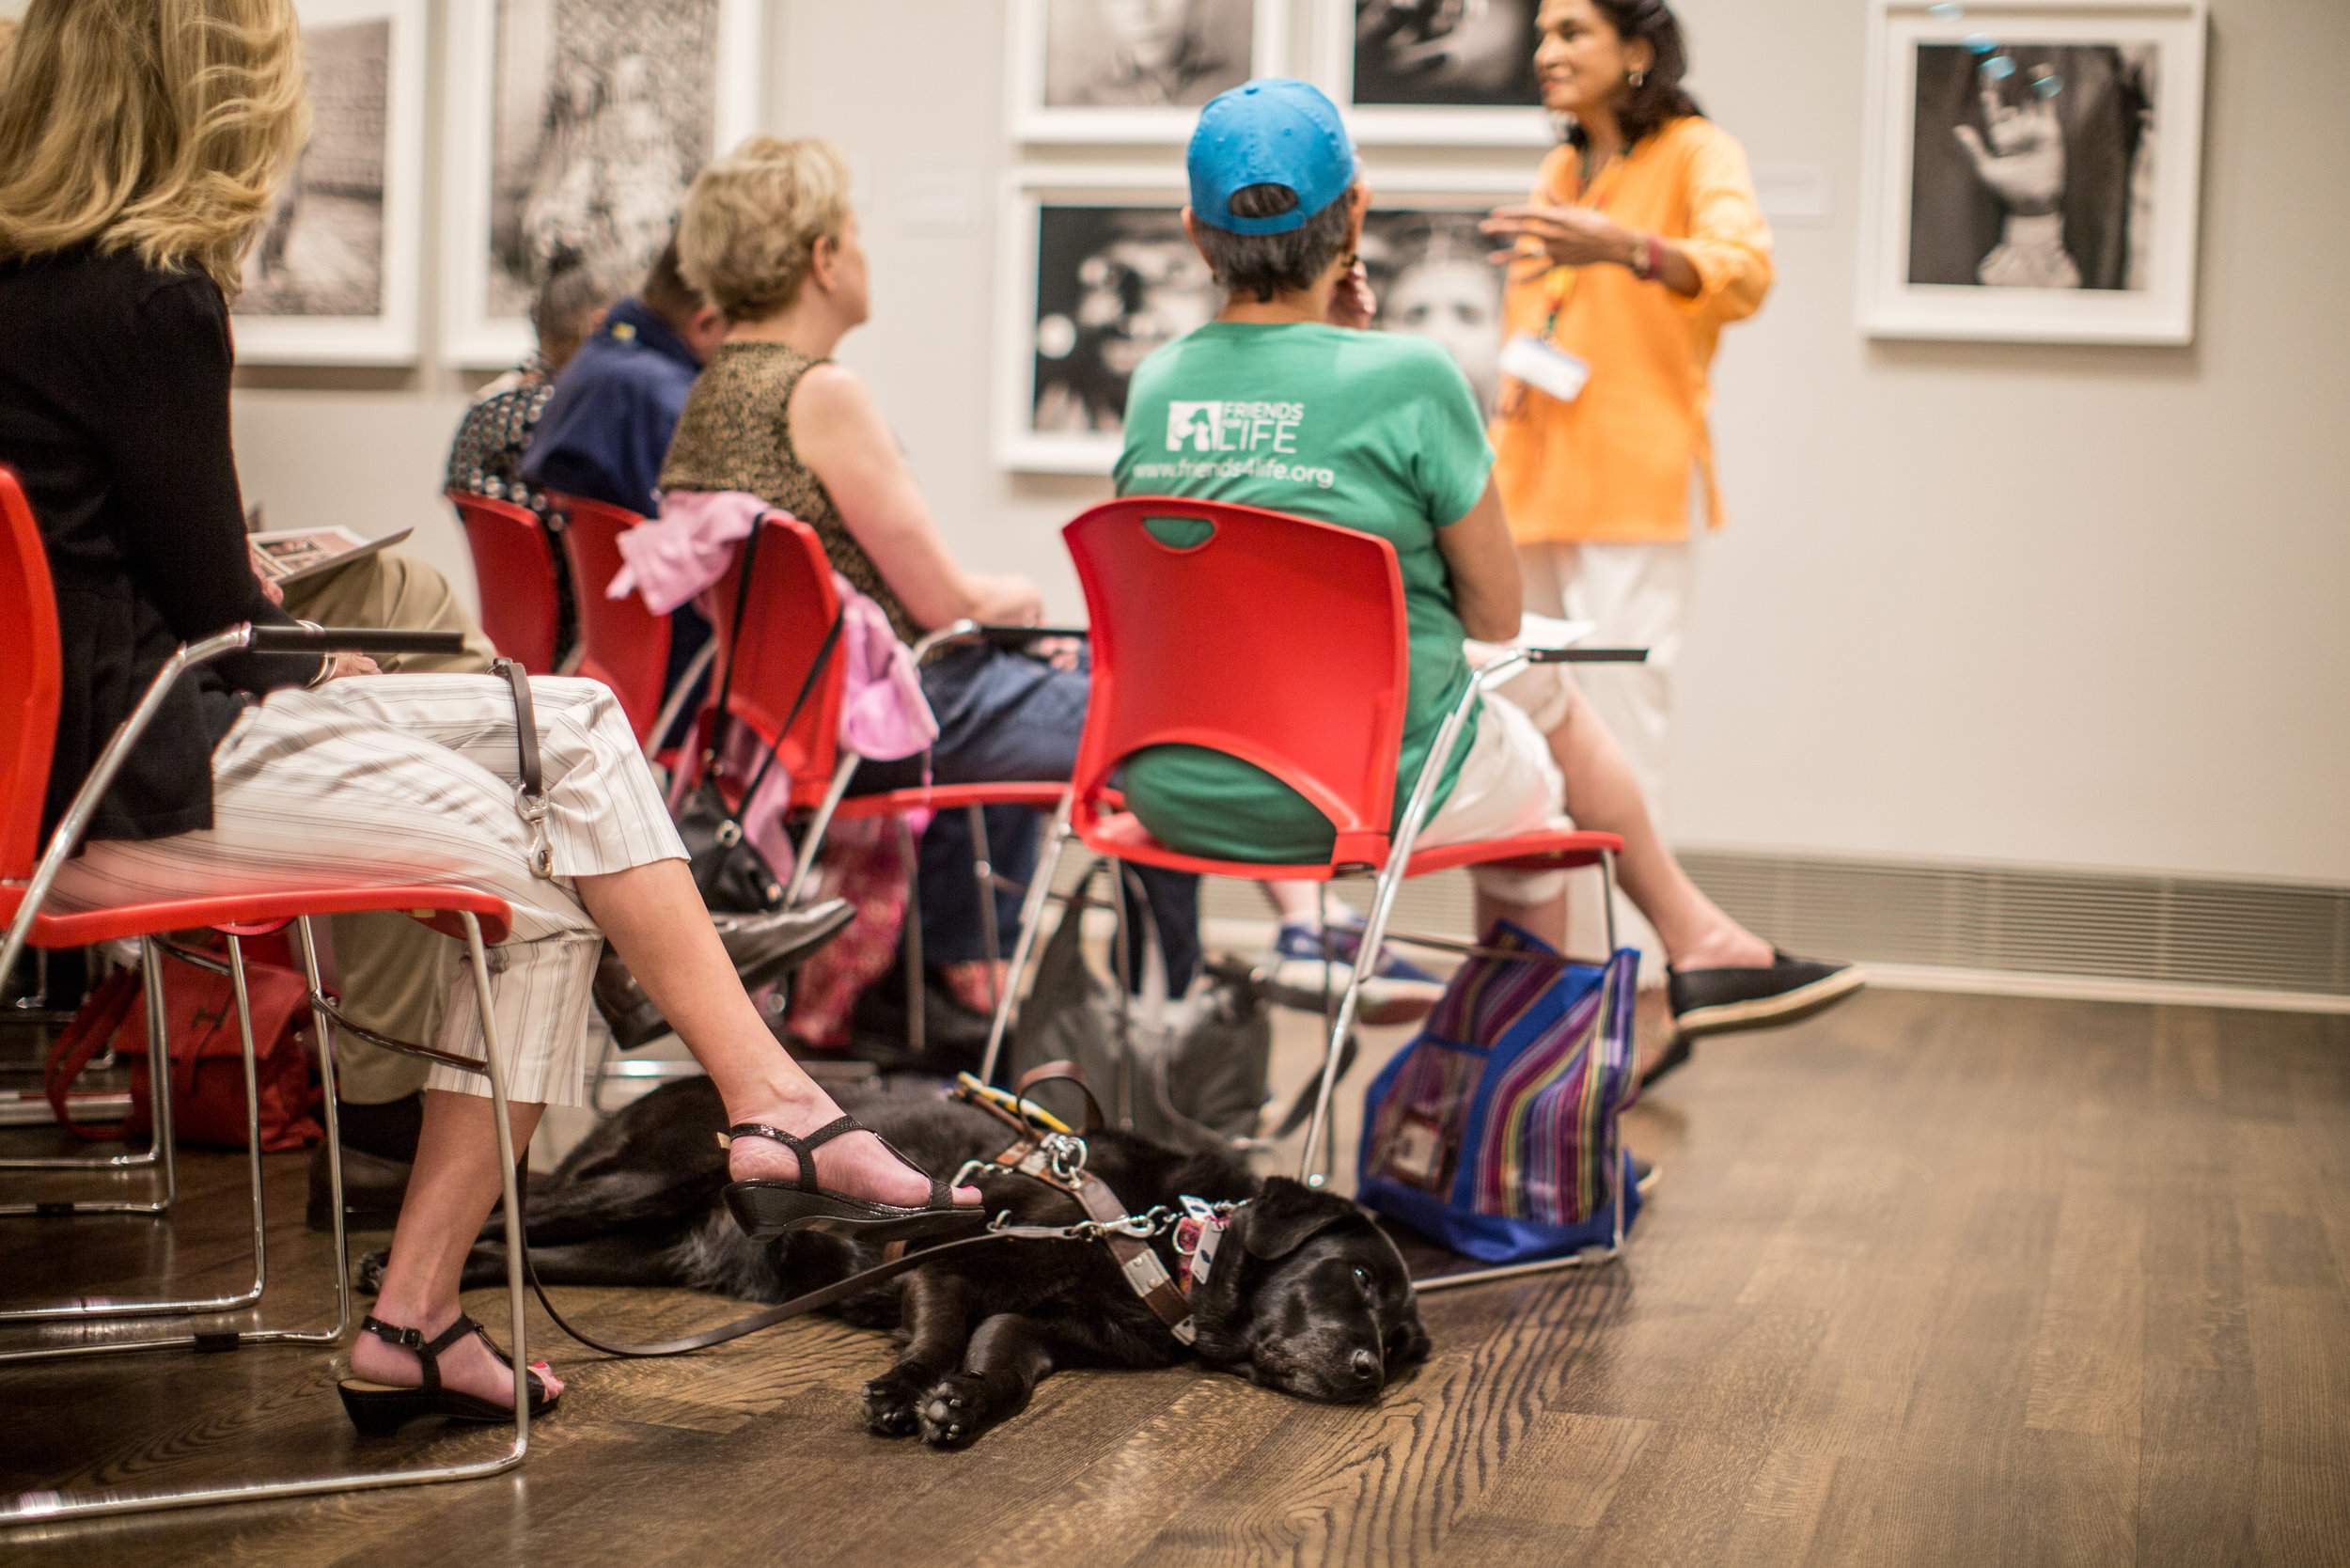 A docent teaches the group. Photograph by Allysson Huntsman. Courtesy of the Museum of Fine Arts, Houston